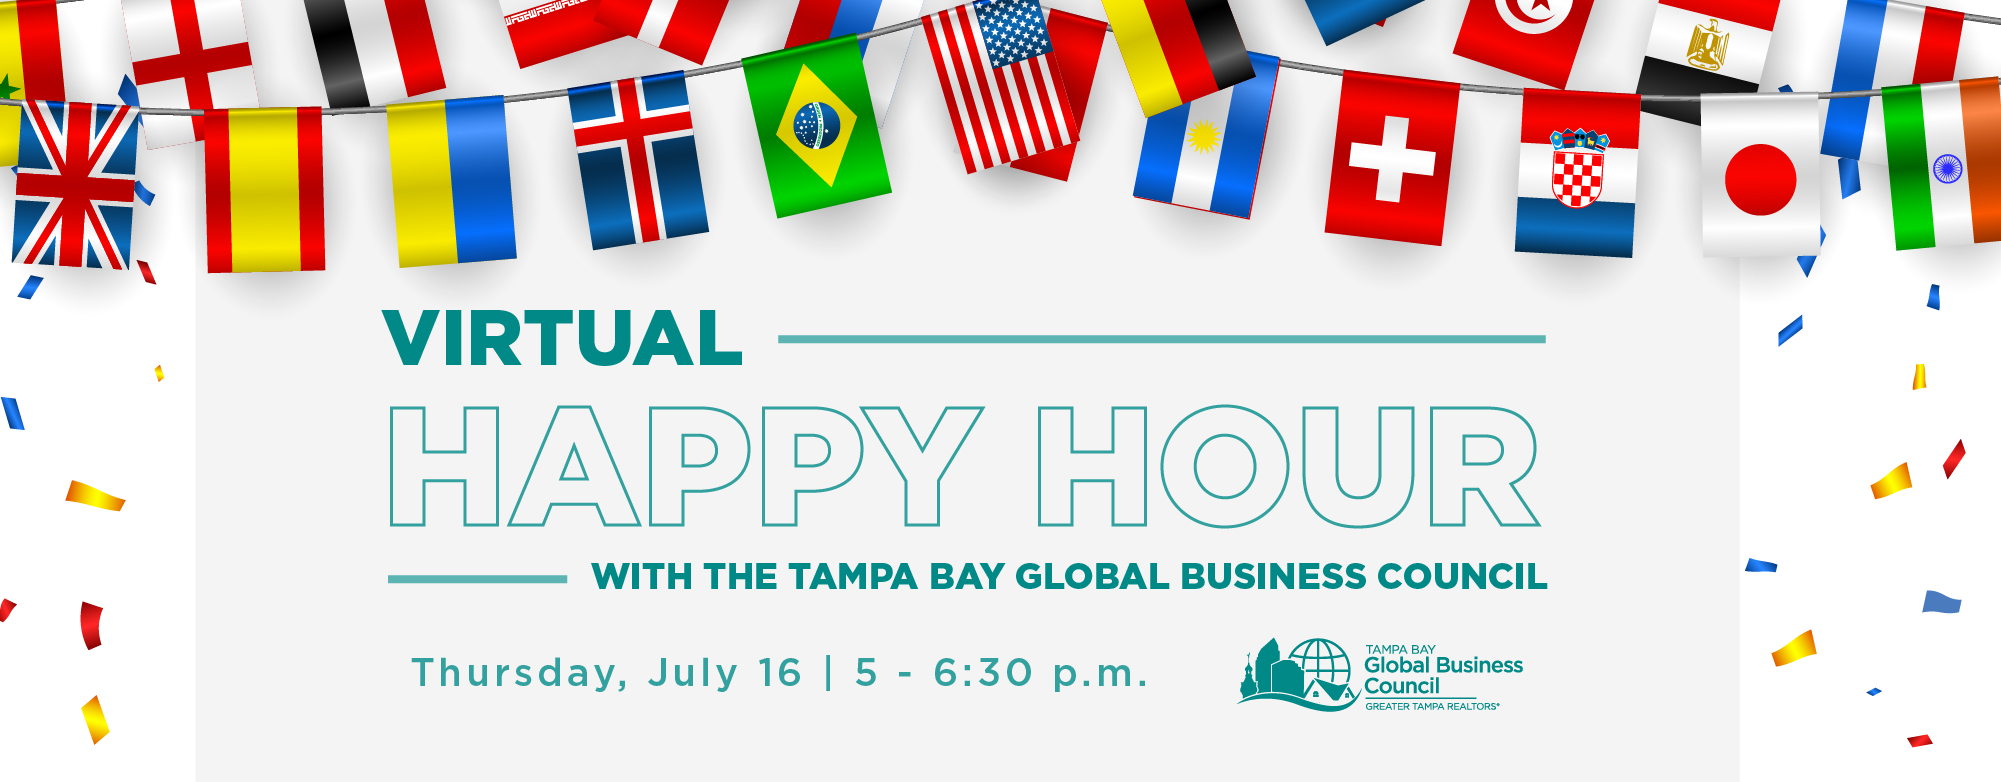 Virtual Happy Hour with the Tampa Bay Global Business Council is Thursday, July 16 at 5 p.m.